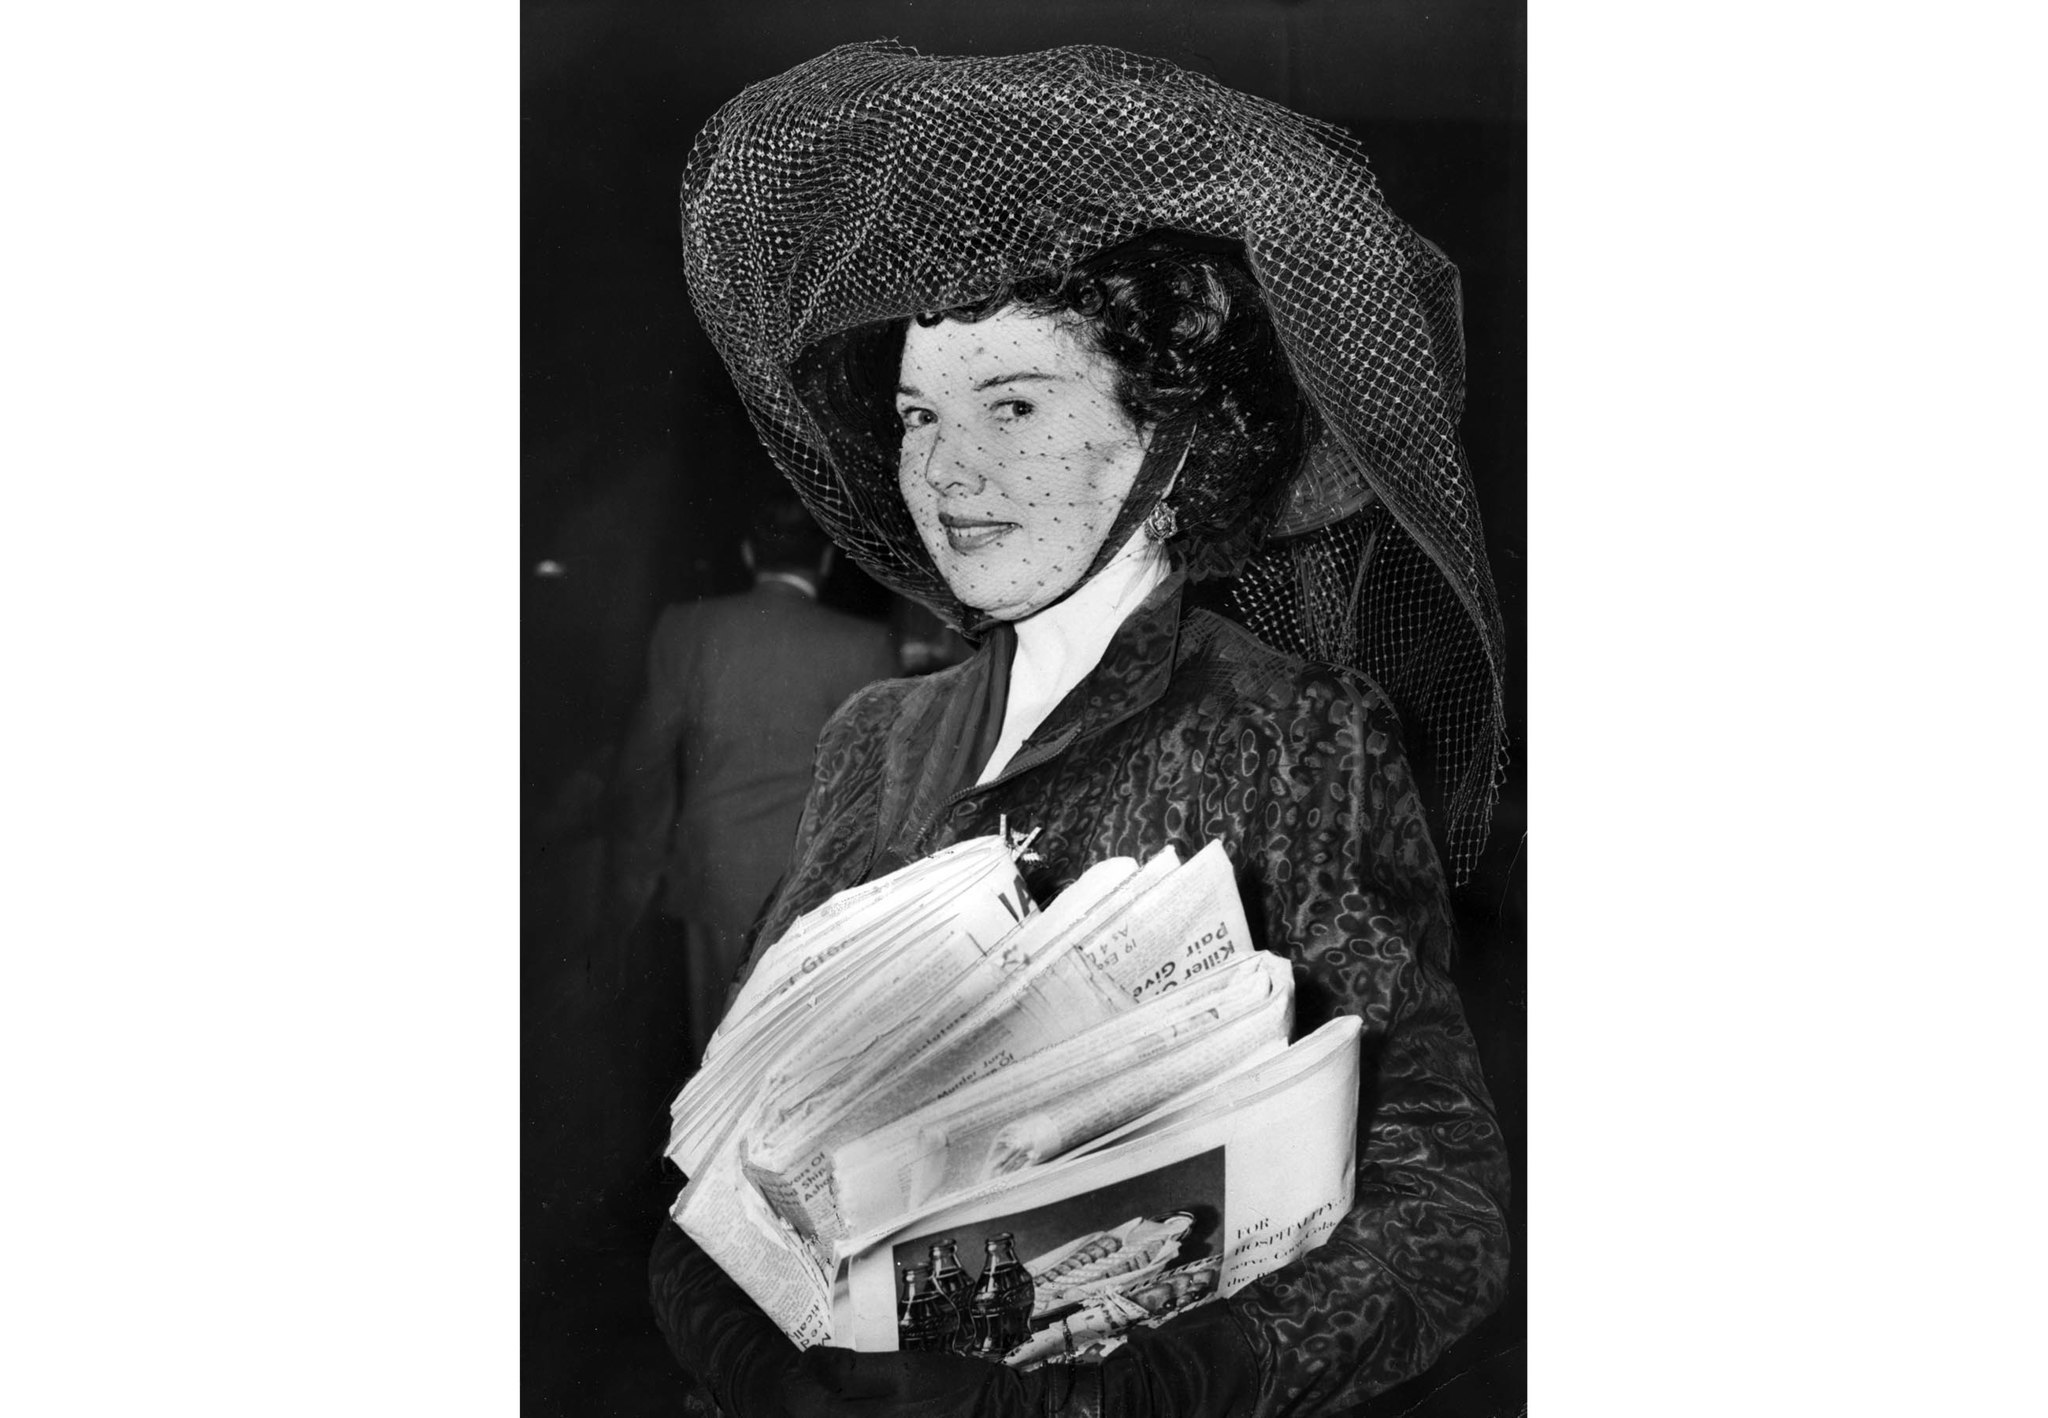 Sept. 28, 1950: Dolores Gunn, 50, wearing a big black hat to court, denies morals charge against her